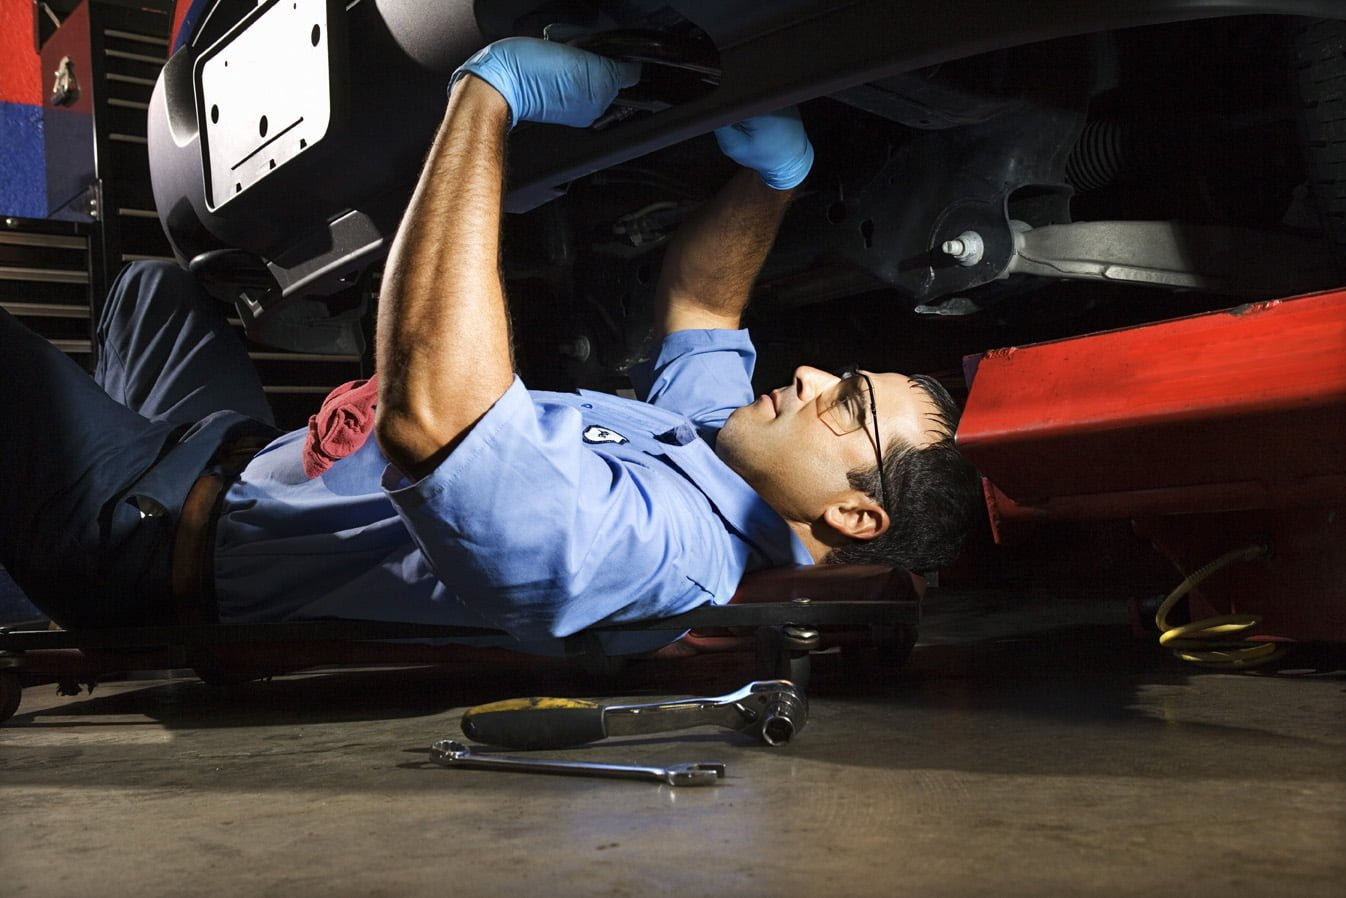 MOT your car for just £1. Offer valid for 13 months.